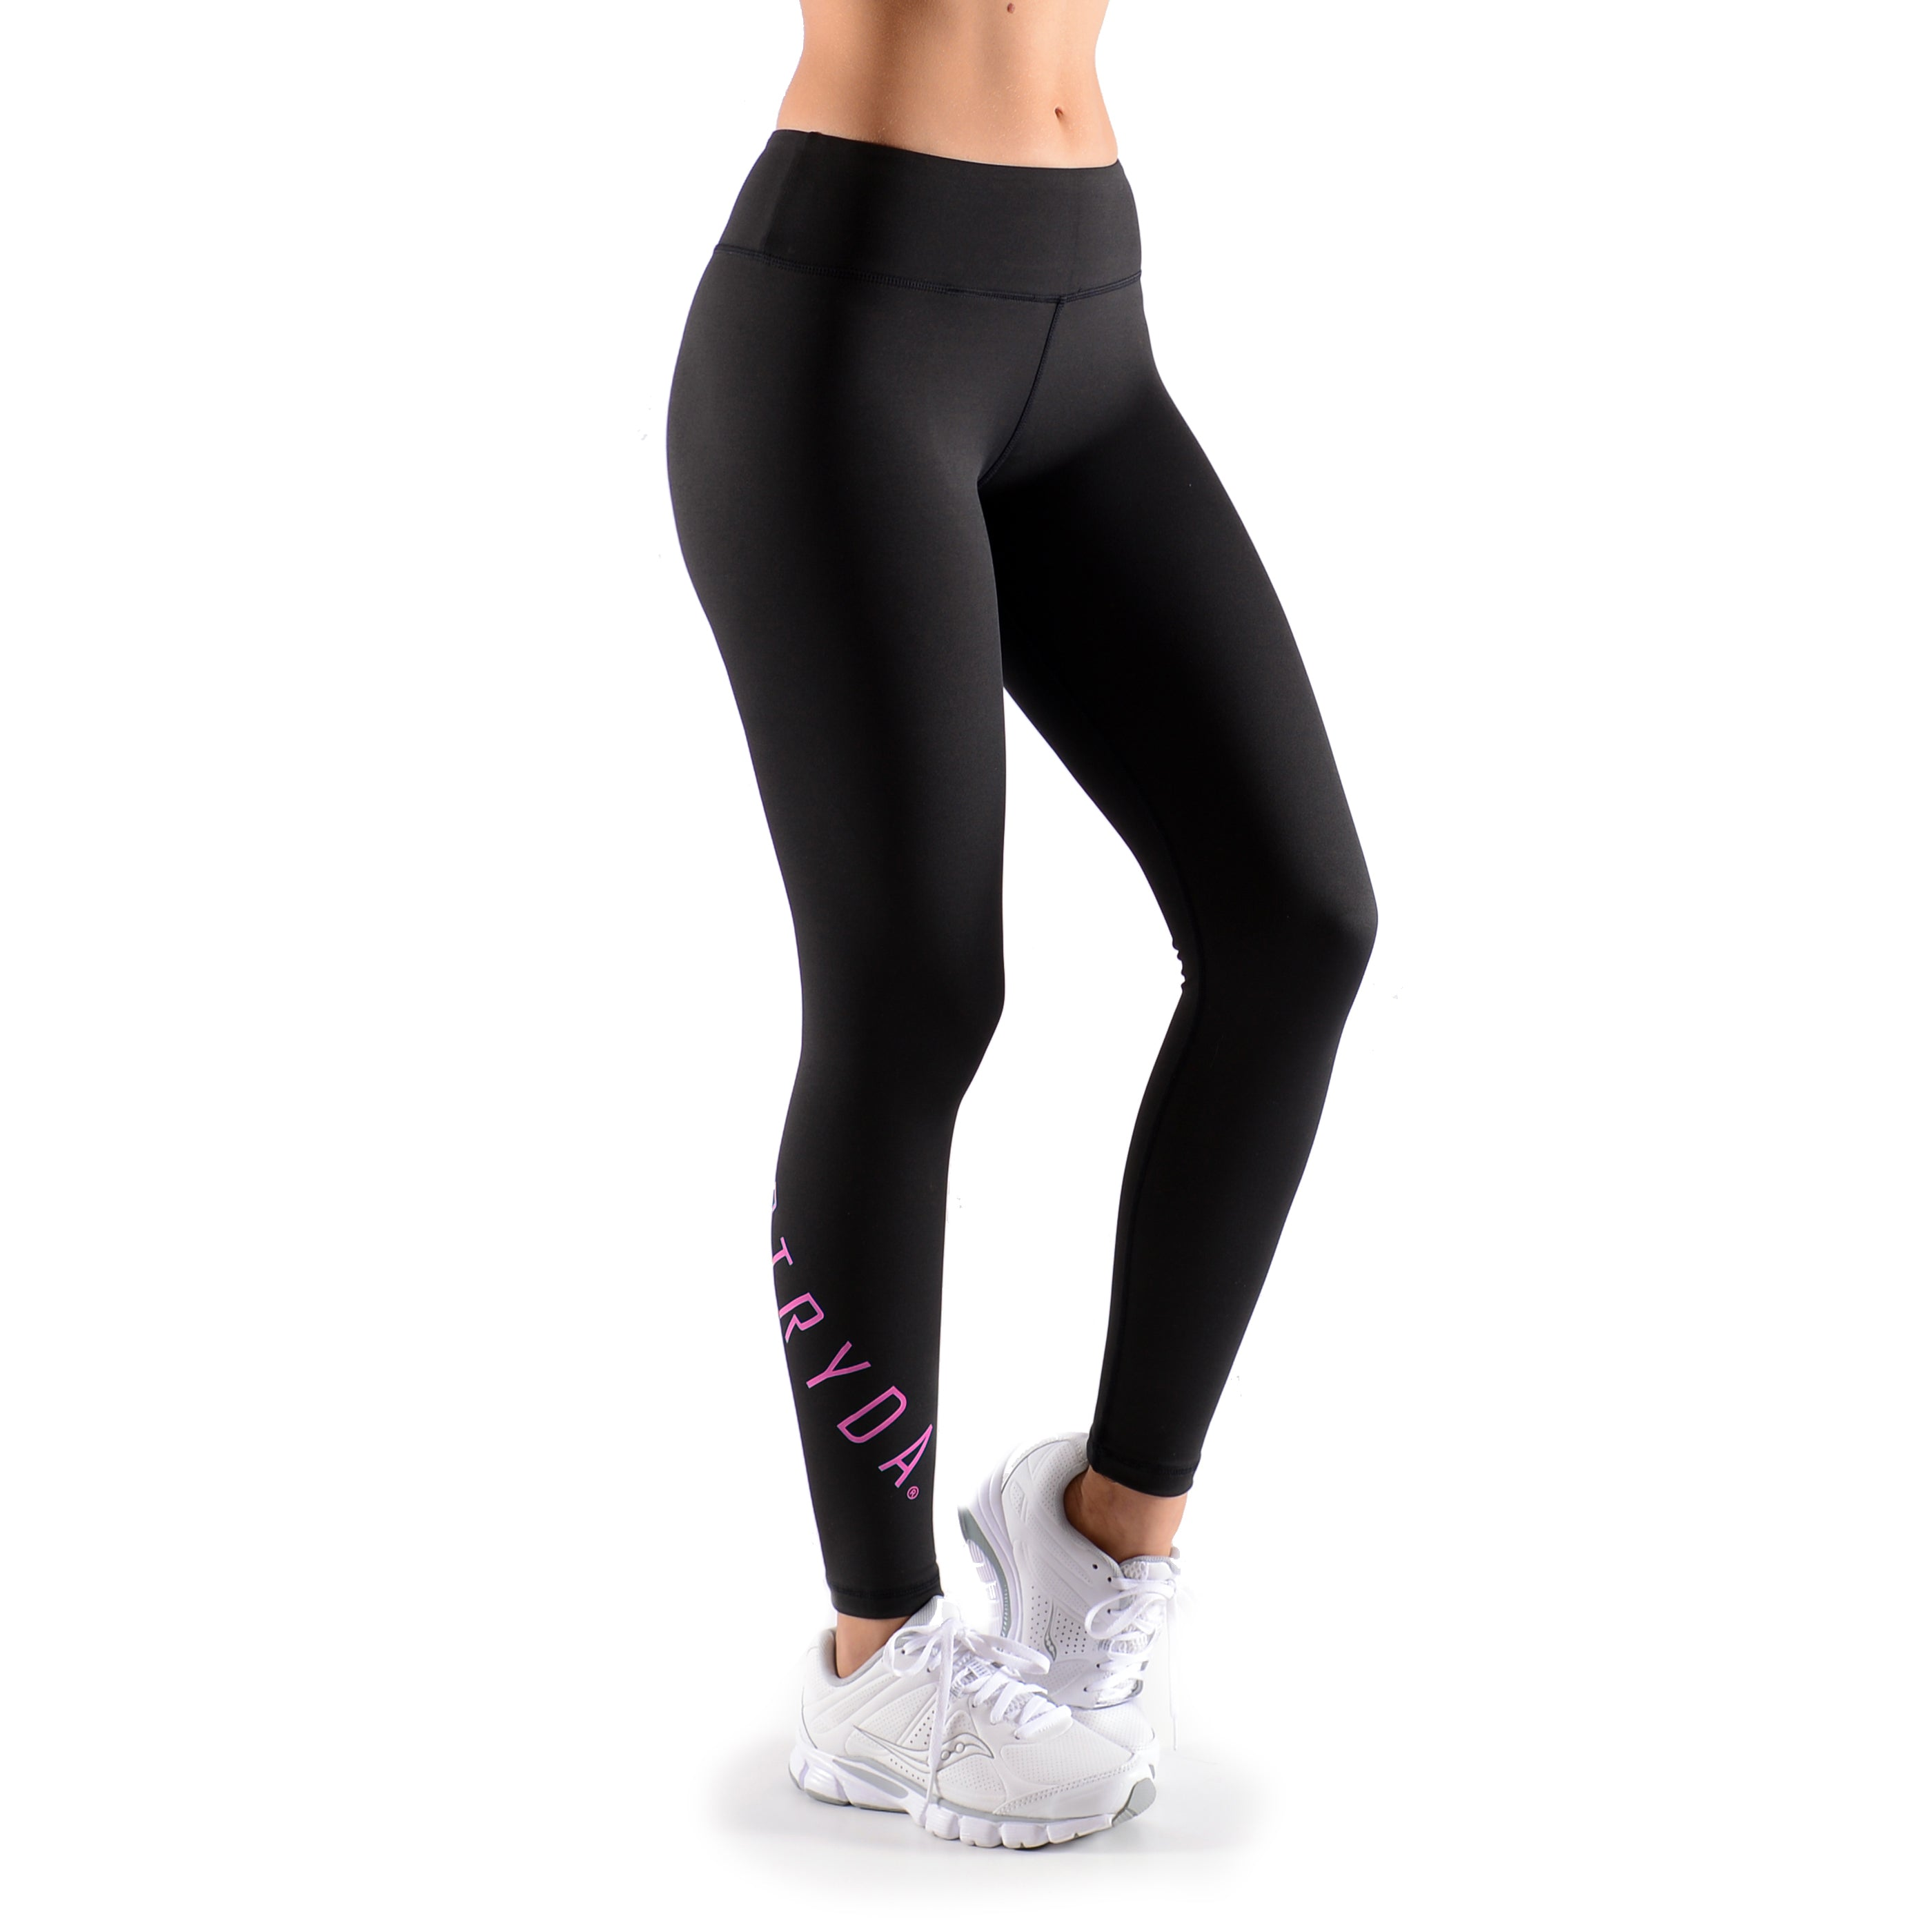 PINK PANTHER Ankle Biter Length Compression Tights